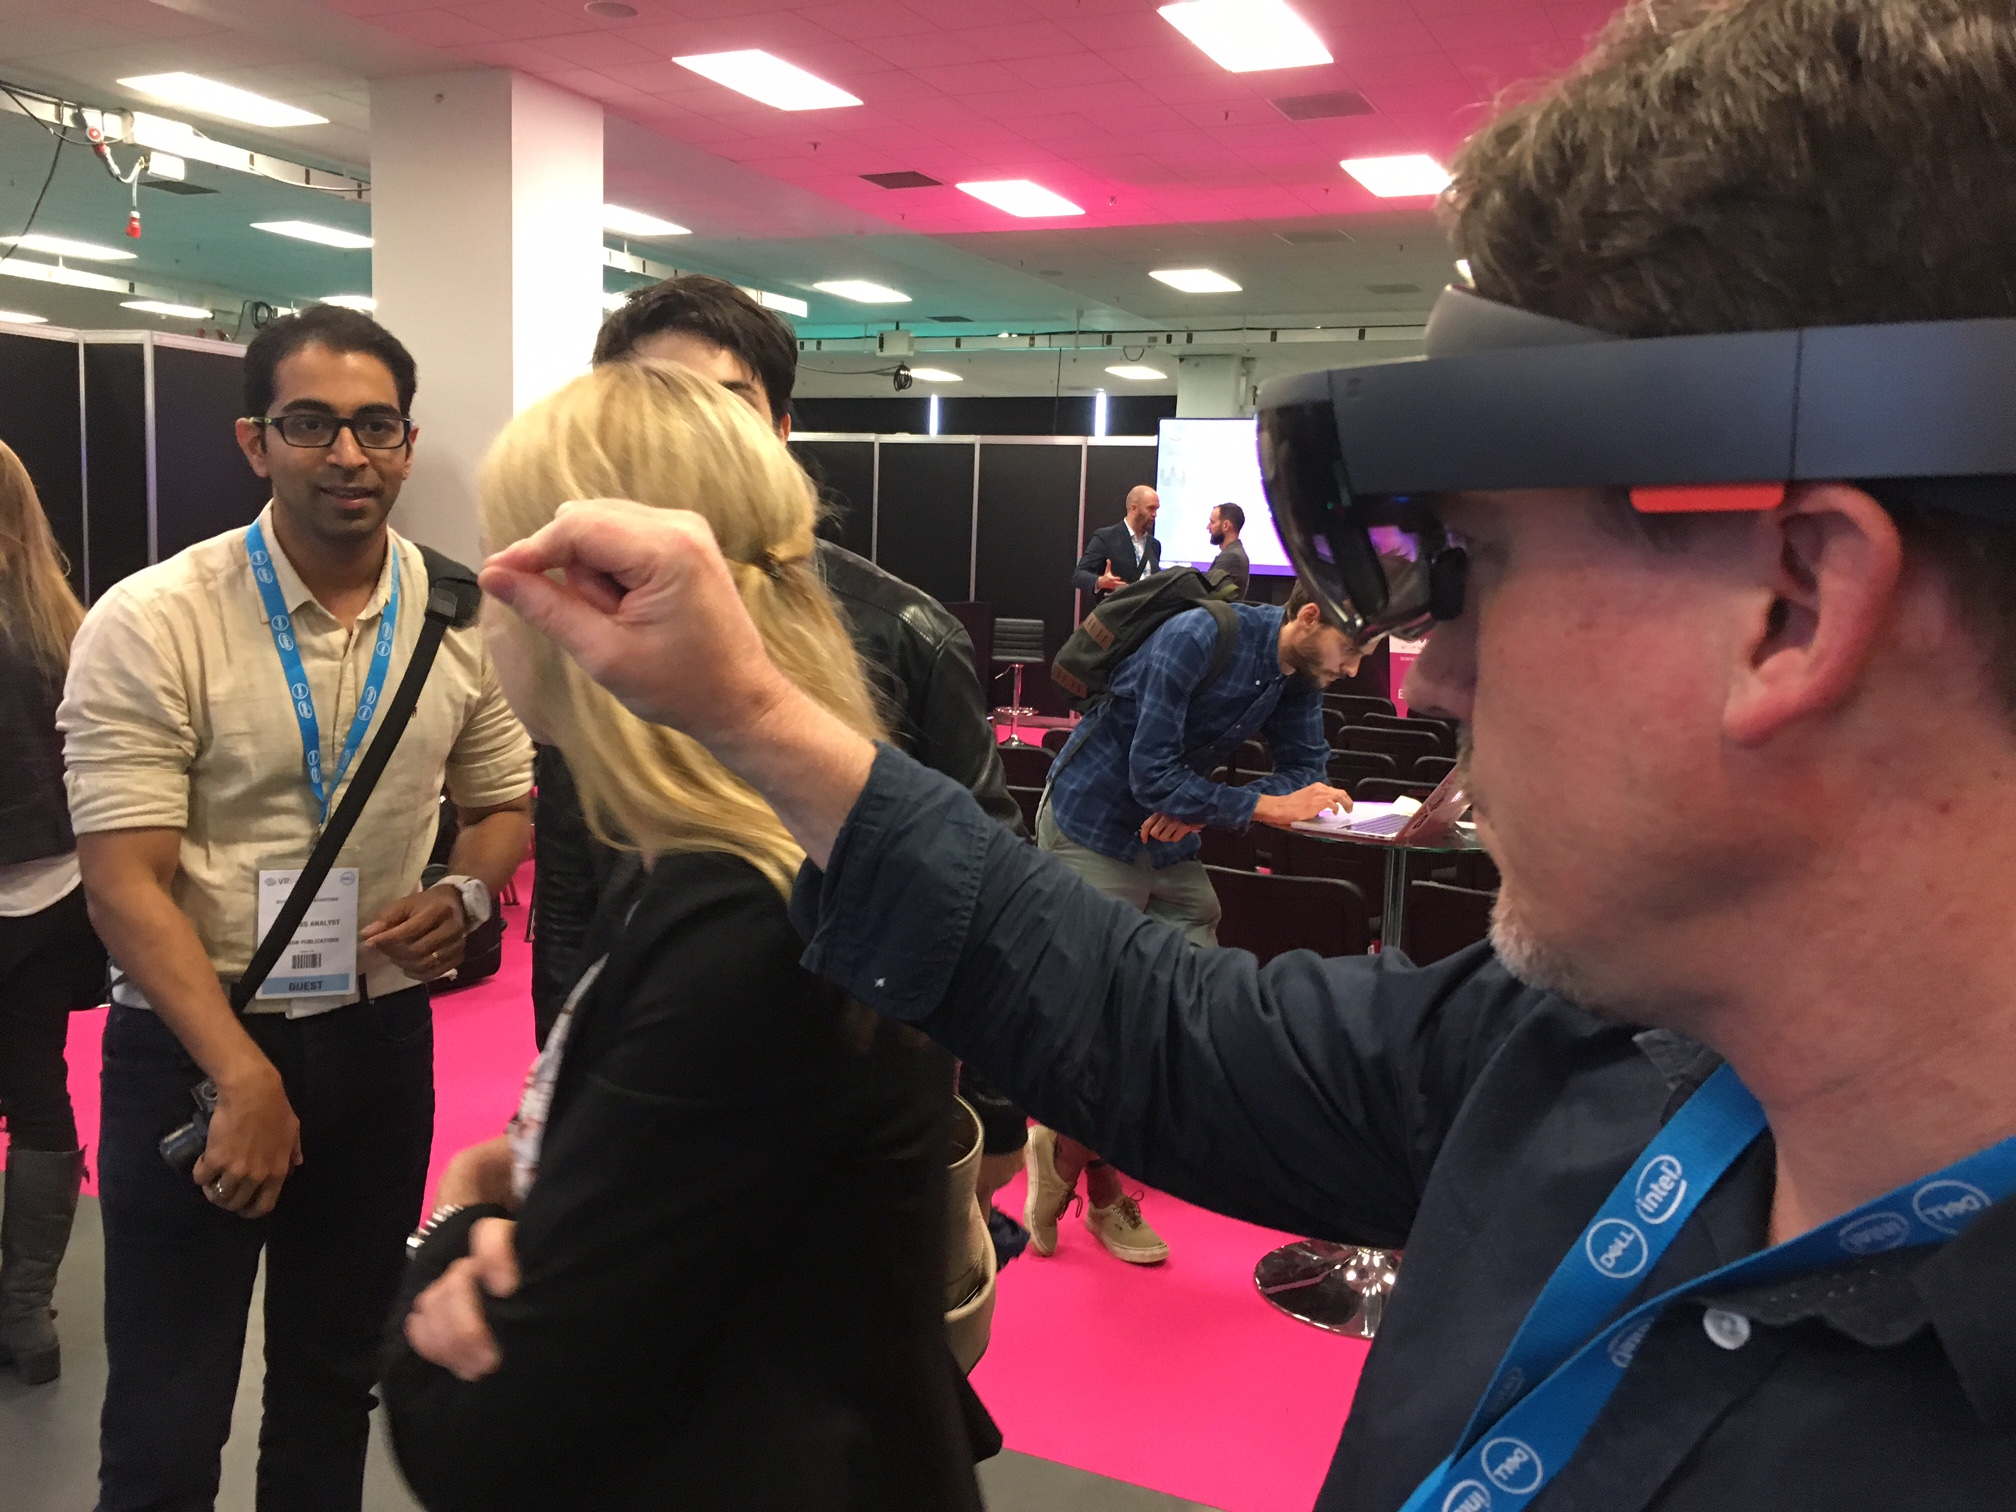 South West video production London Olympia VR conference. Chris trying out the Micorsoft HoloLens kit with holograpic images